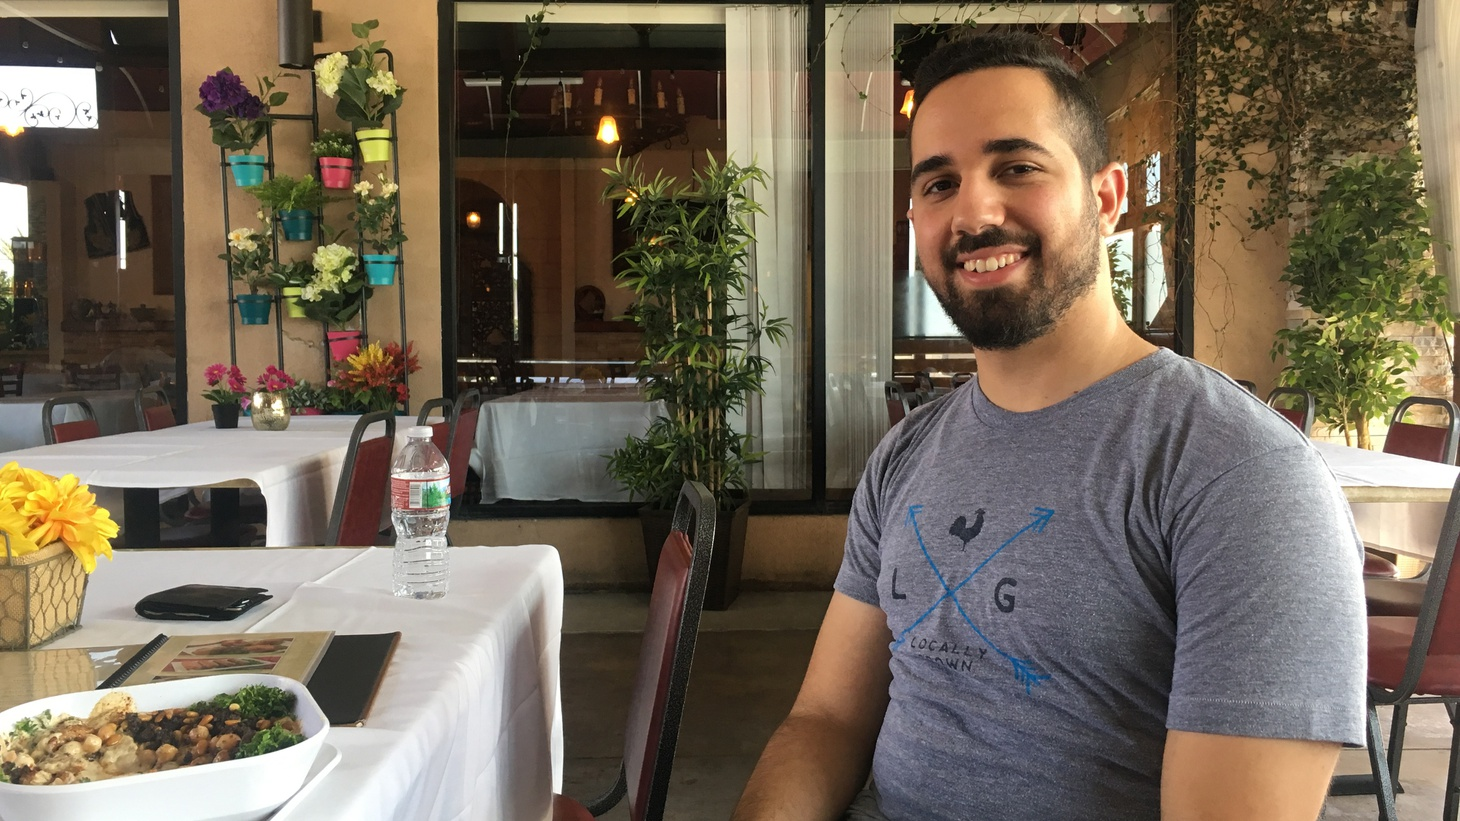 Since Trump's election, Syrian Americans have been following the news and keeping up with their families back home.